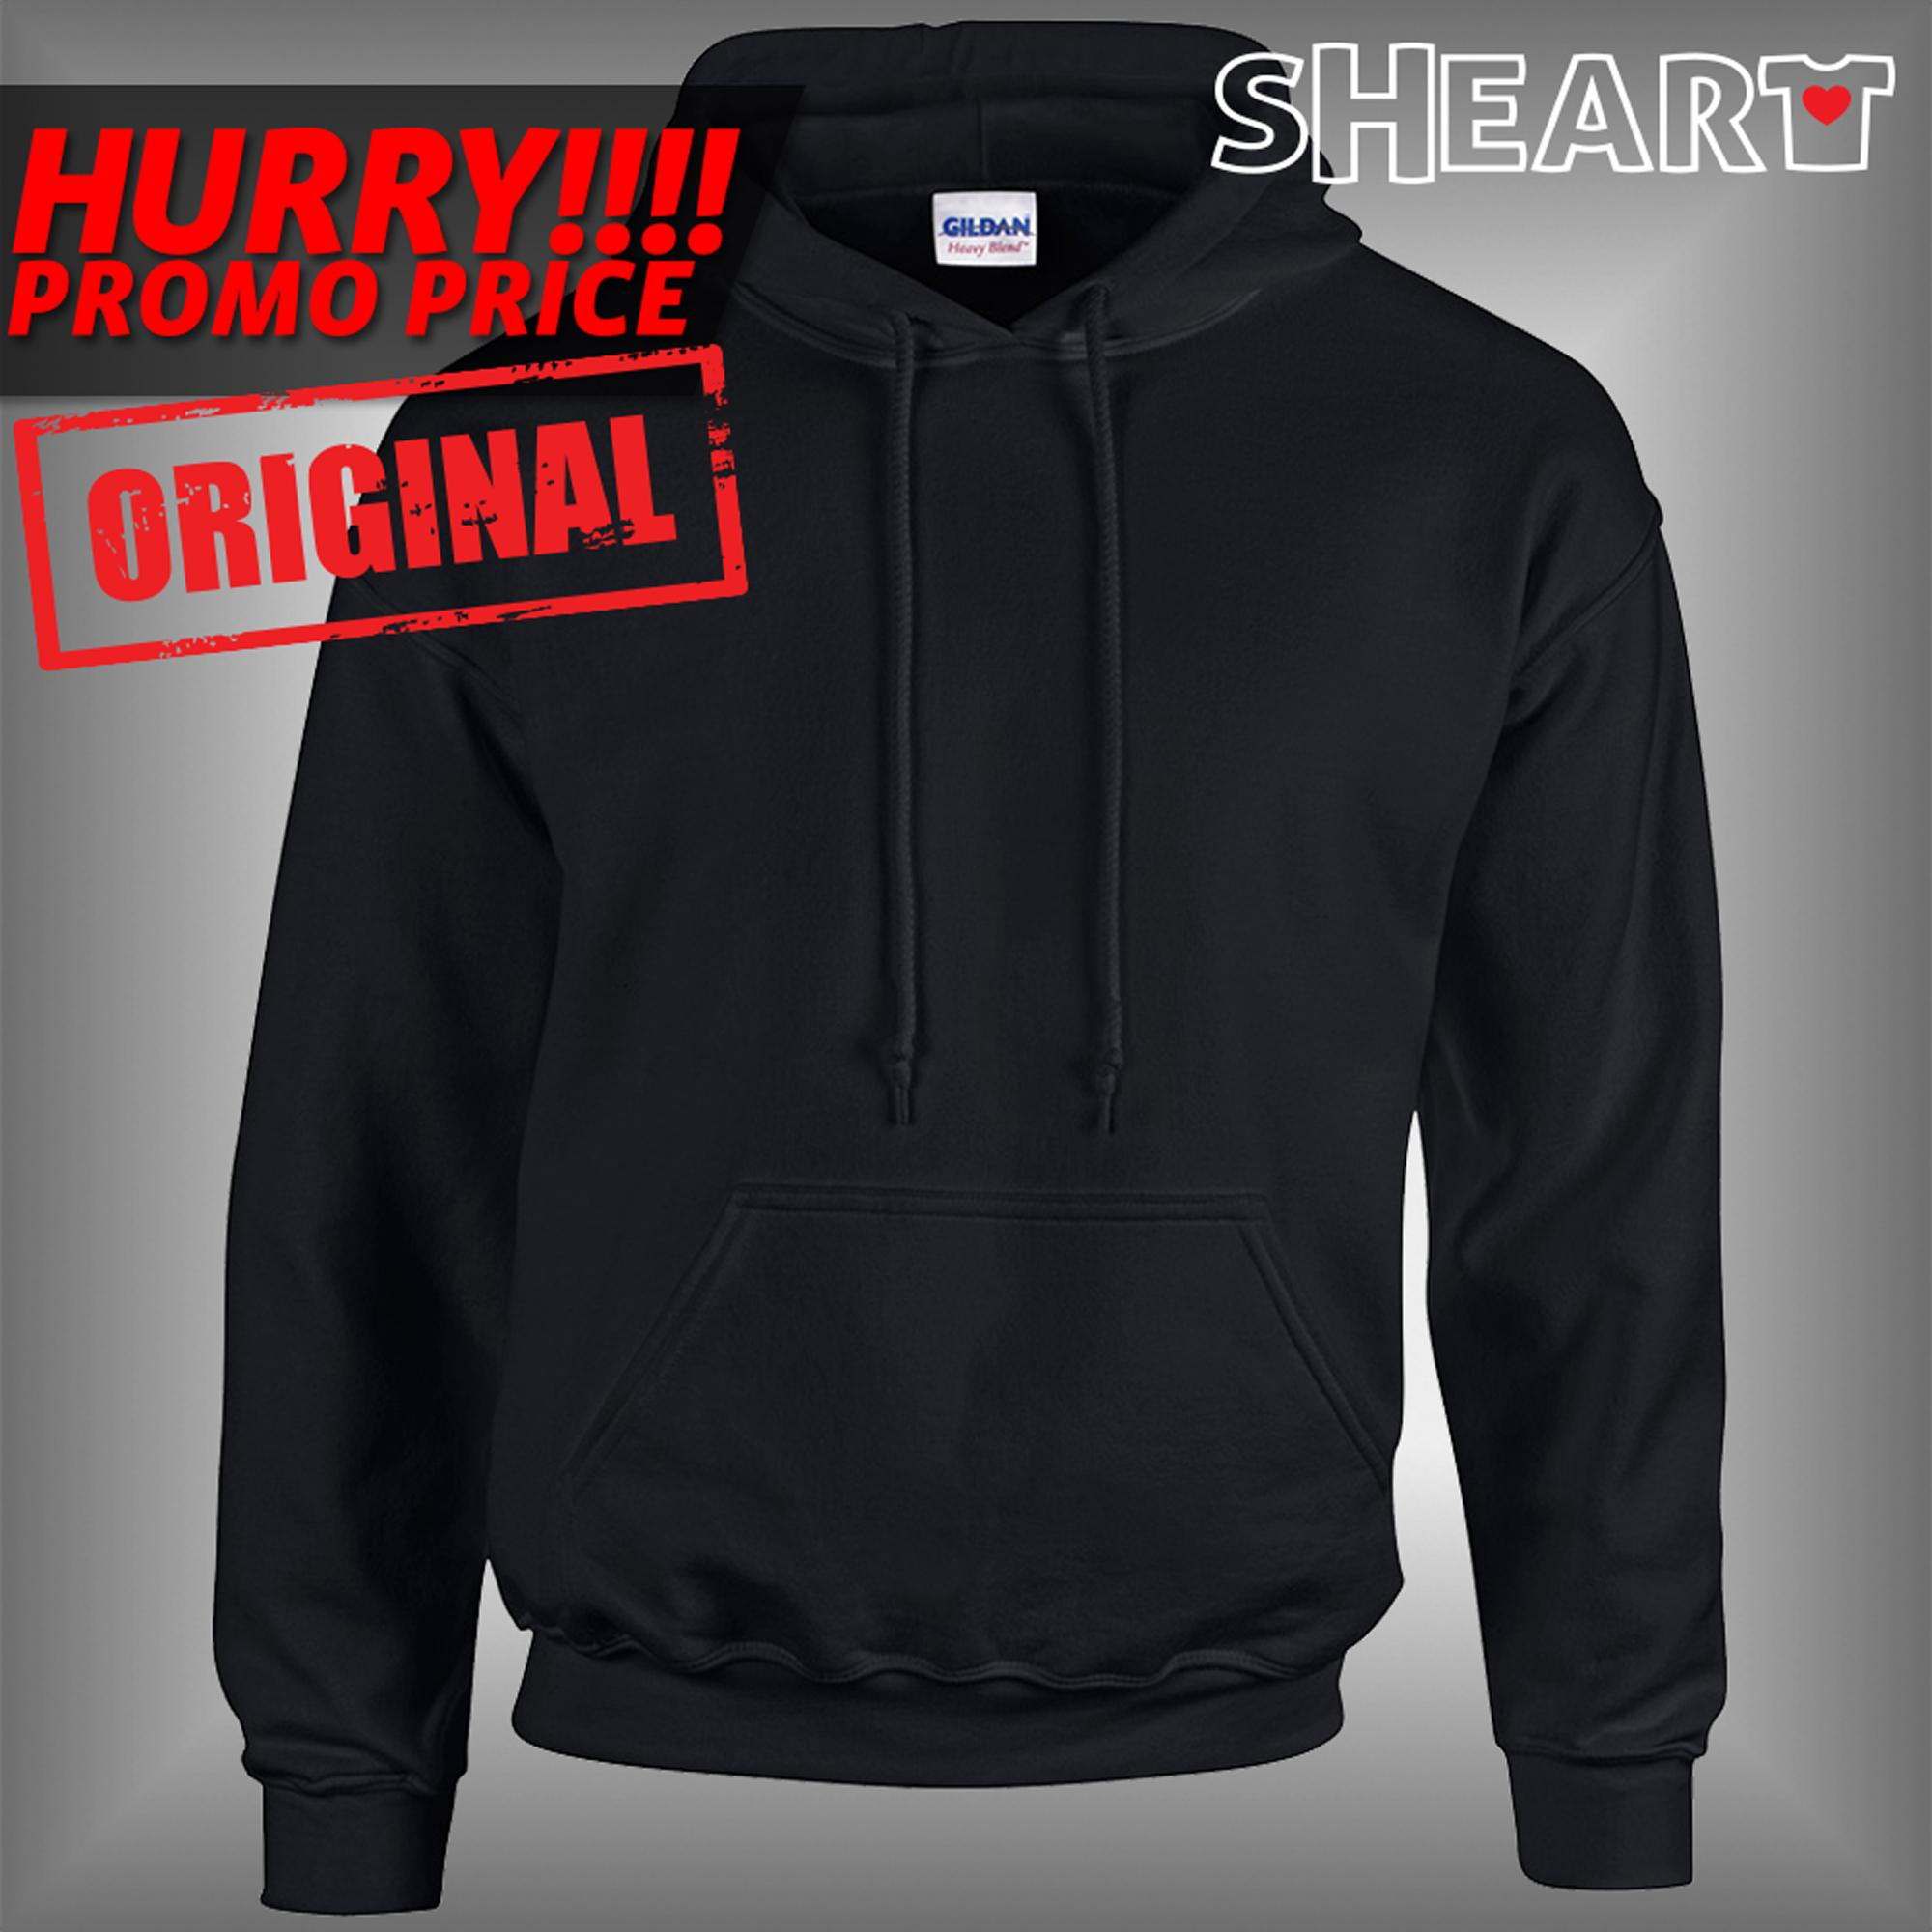 4a6c13859 Mens Hoodies for sale - Hoodie Jackets for Men online brands